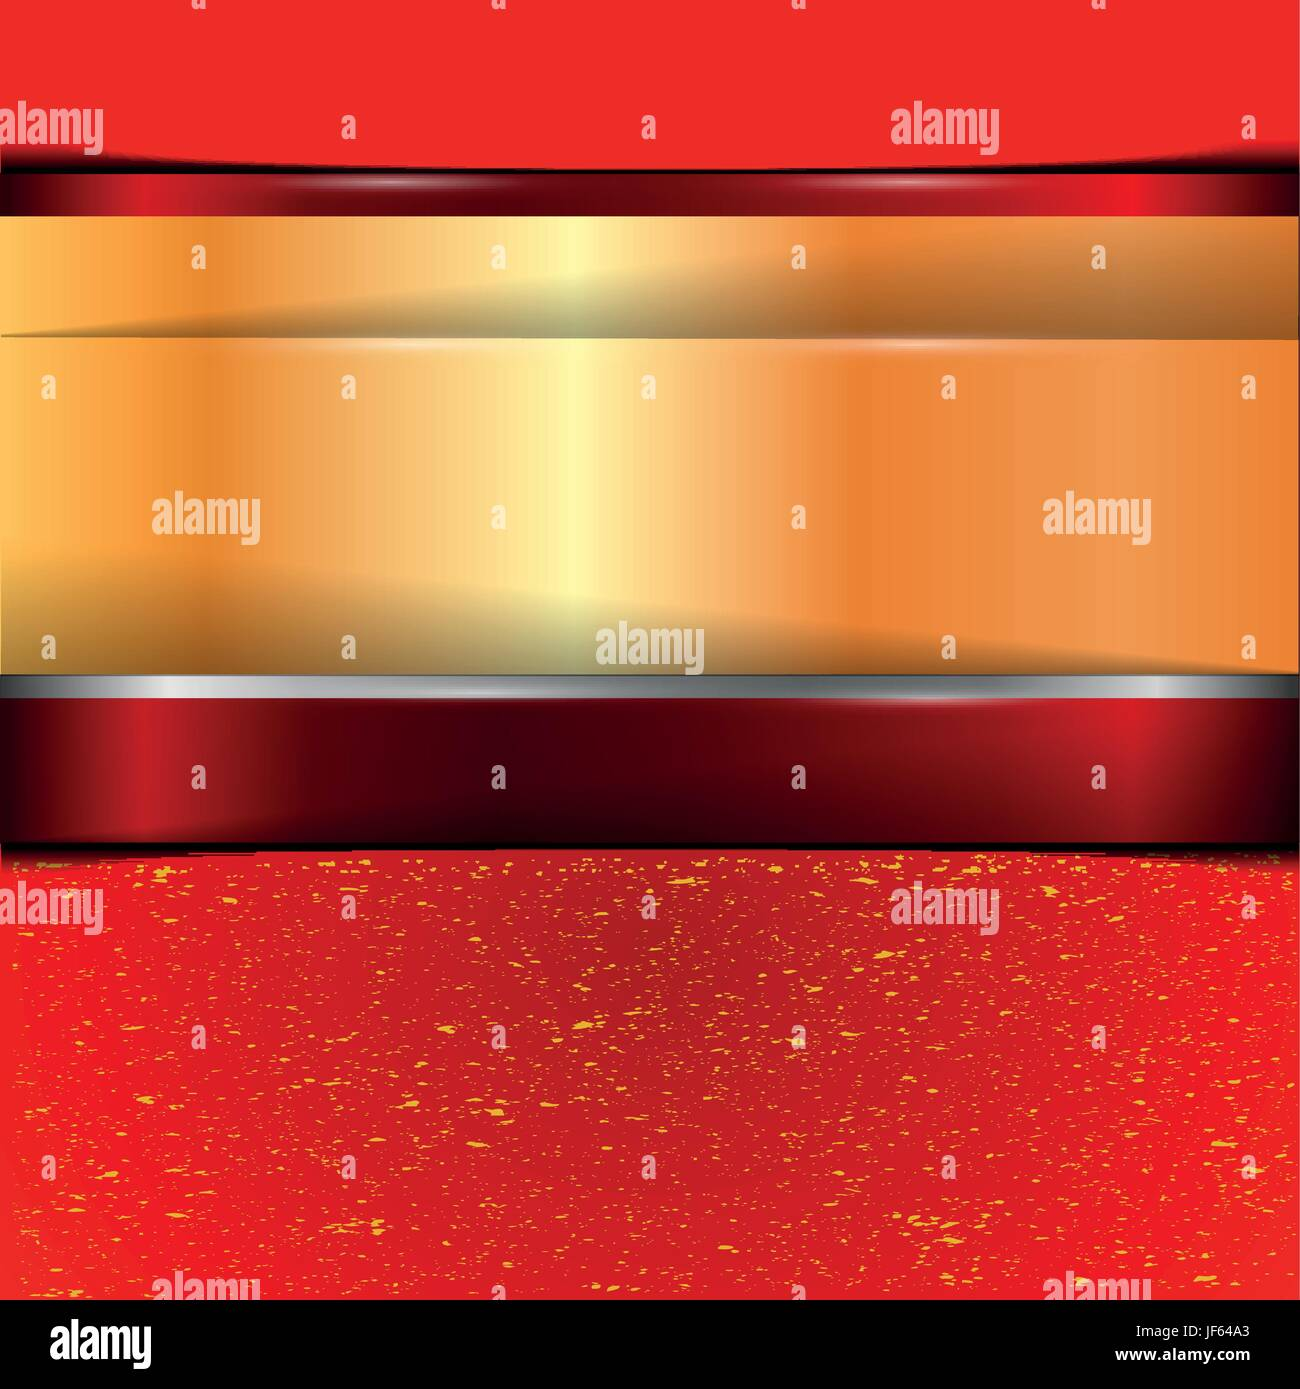 dust, banner, gradient, metallic, shaddow, shadow, gold, red, dust, banner, - Stock Image